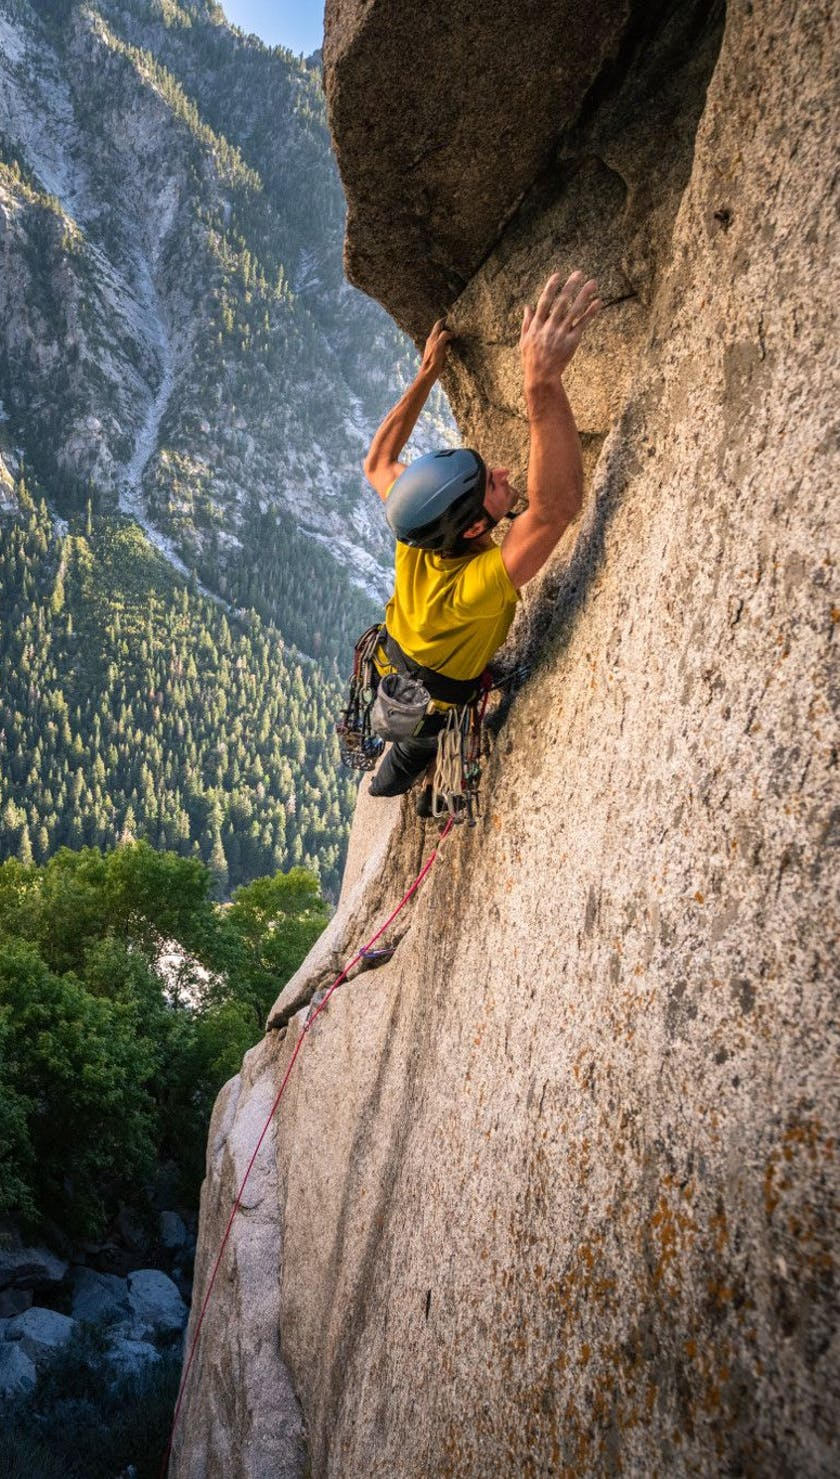 Trad climber makes his next move while wearing the Vision Helmet.